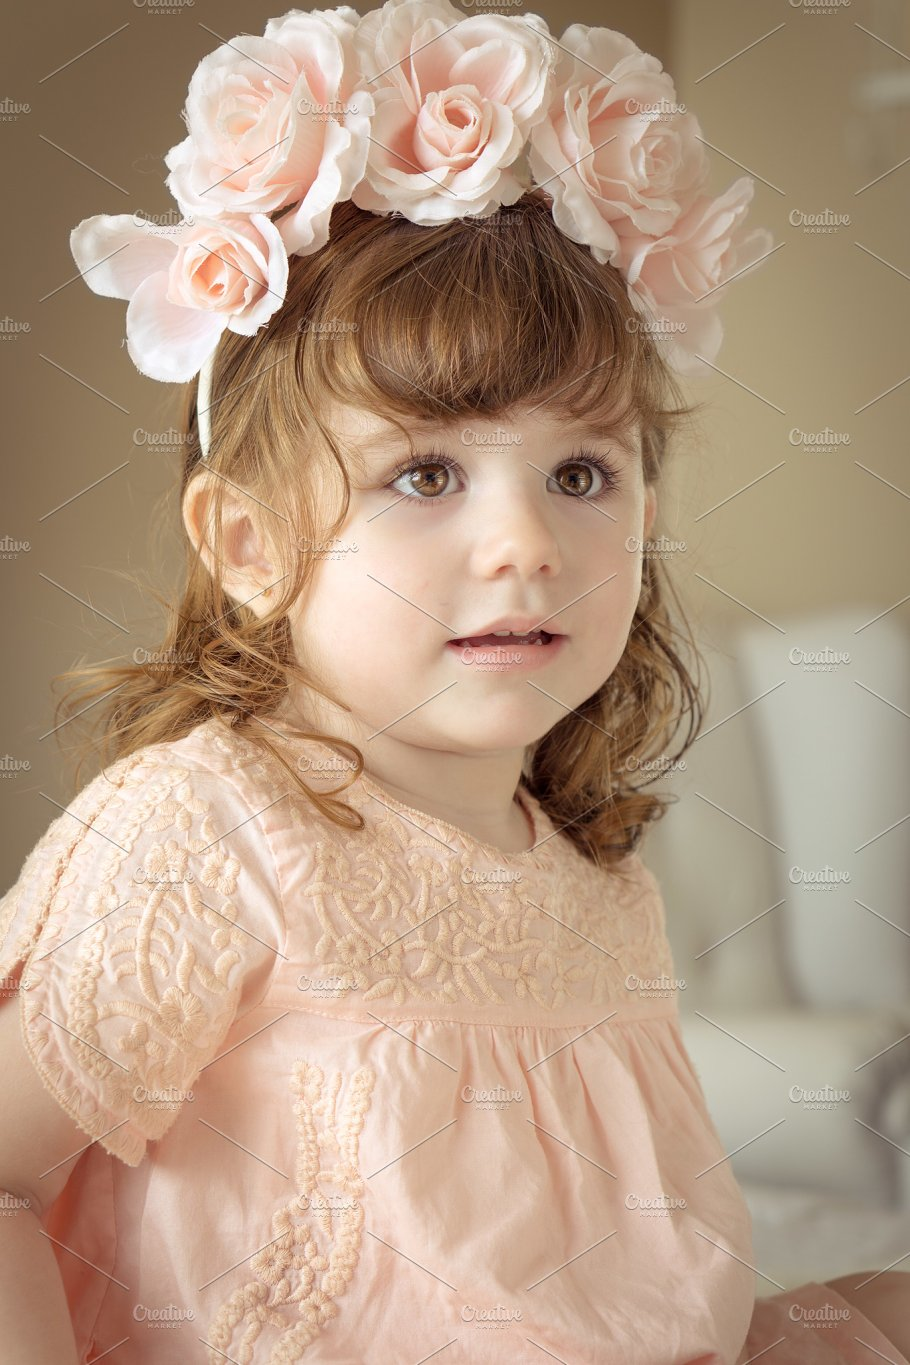 Boho Little Girl With Flower Crown Beauty Fashion Photos